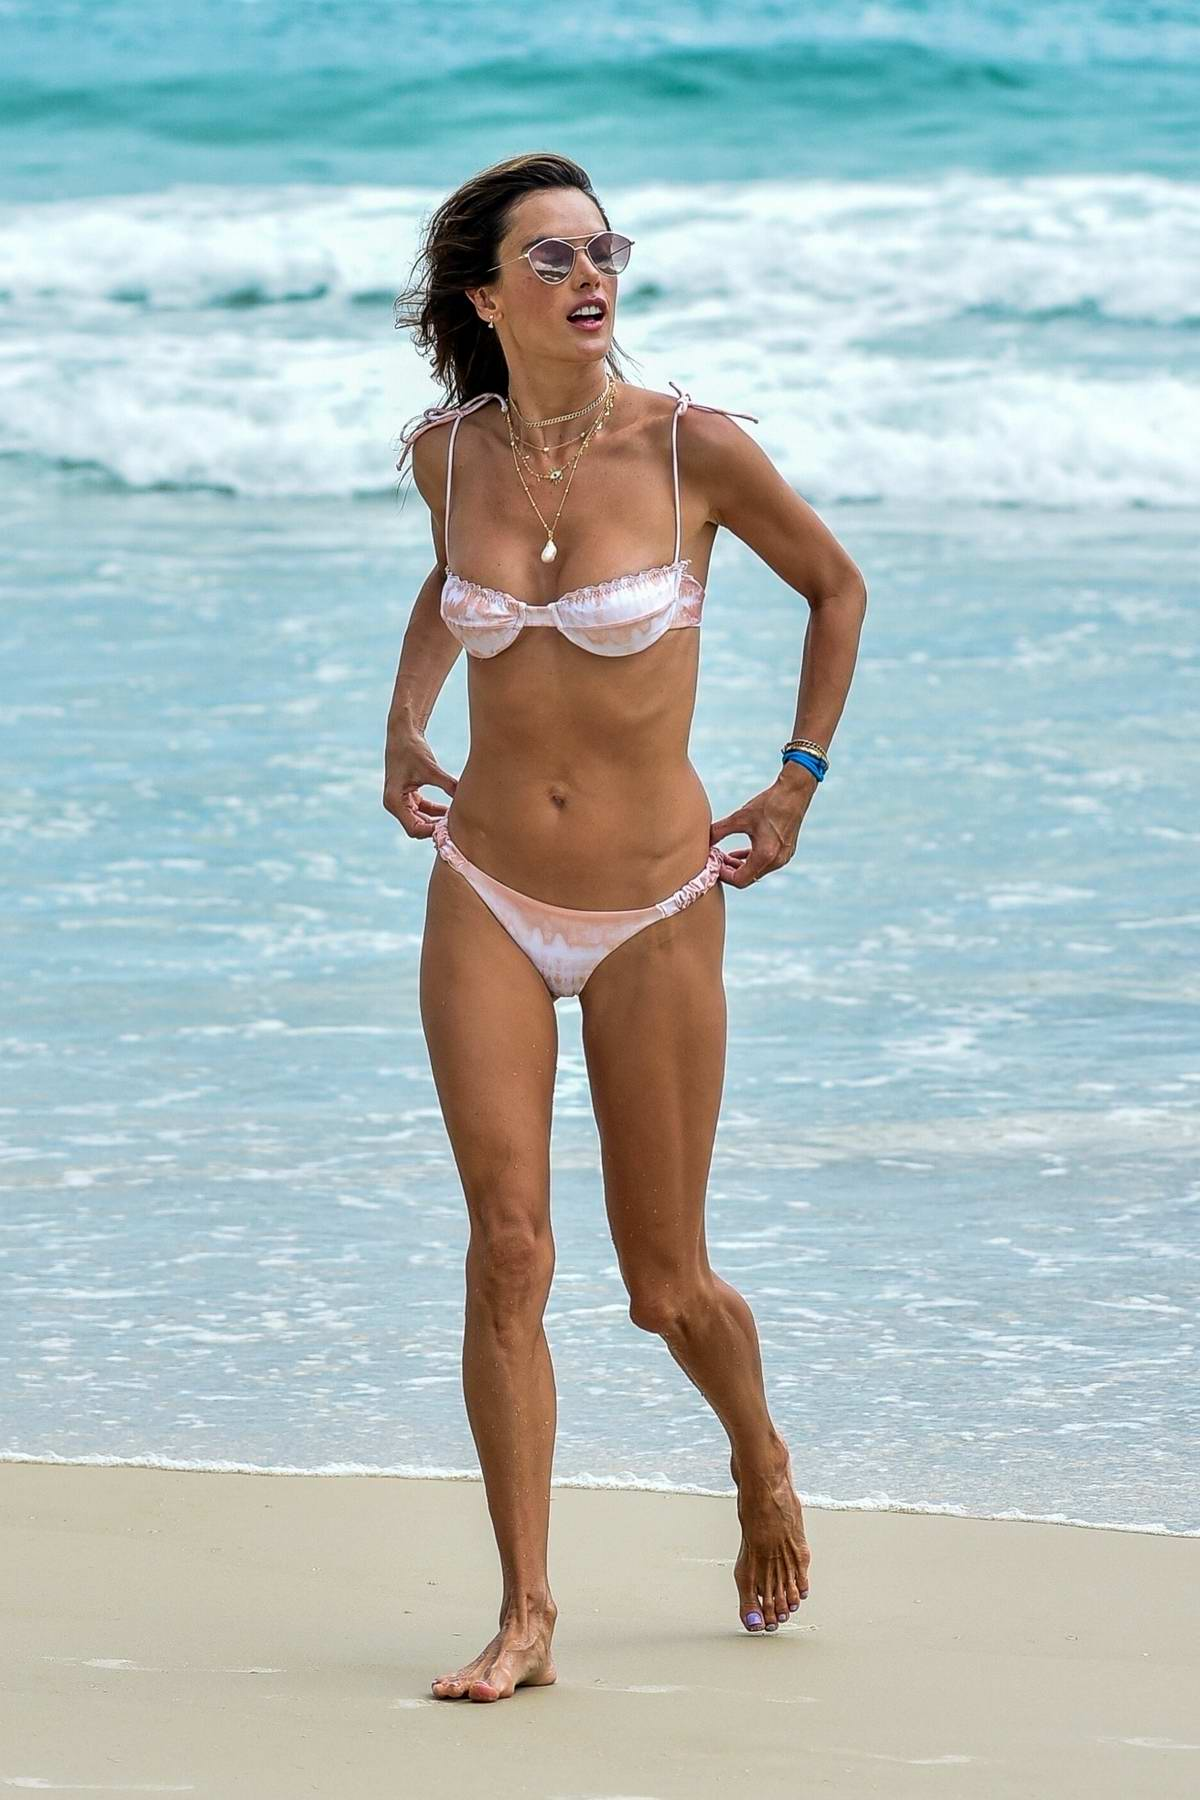 Alessandra Ambrosio shows off her incredible figure in a bikini during a relaxing day at the beach in Florianopolis, Brazil